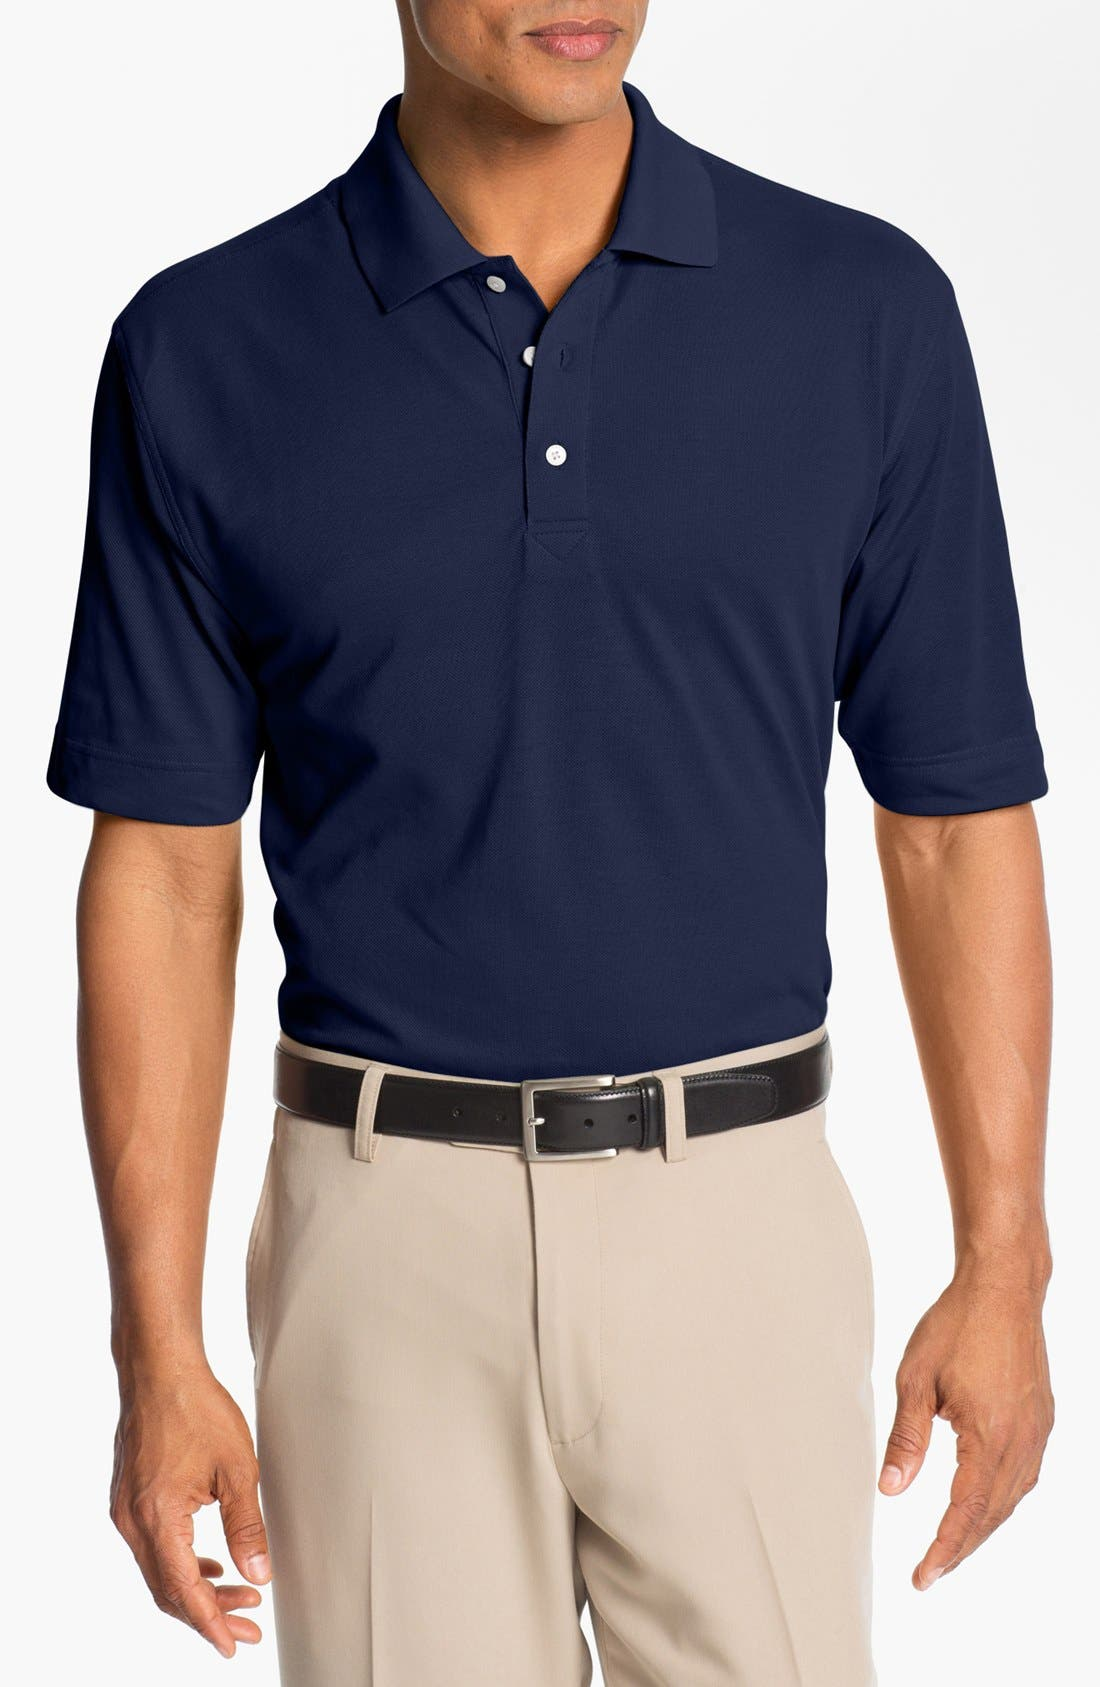 Alternate Image 1 Selected - Cutter & Buck Championship DryTec Golf Polo